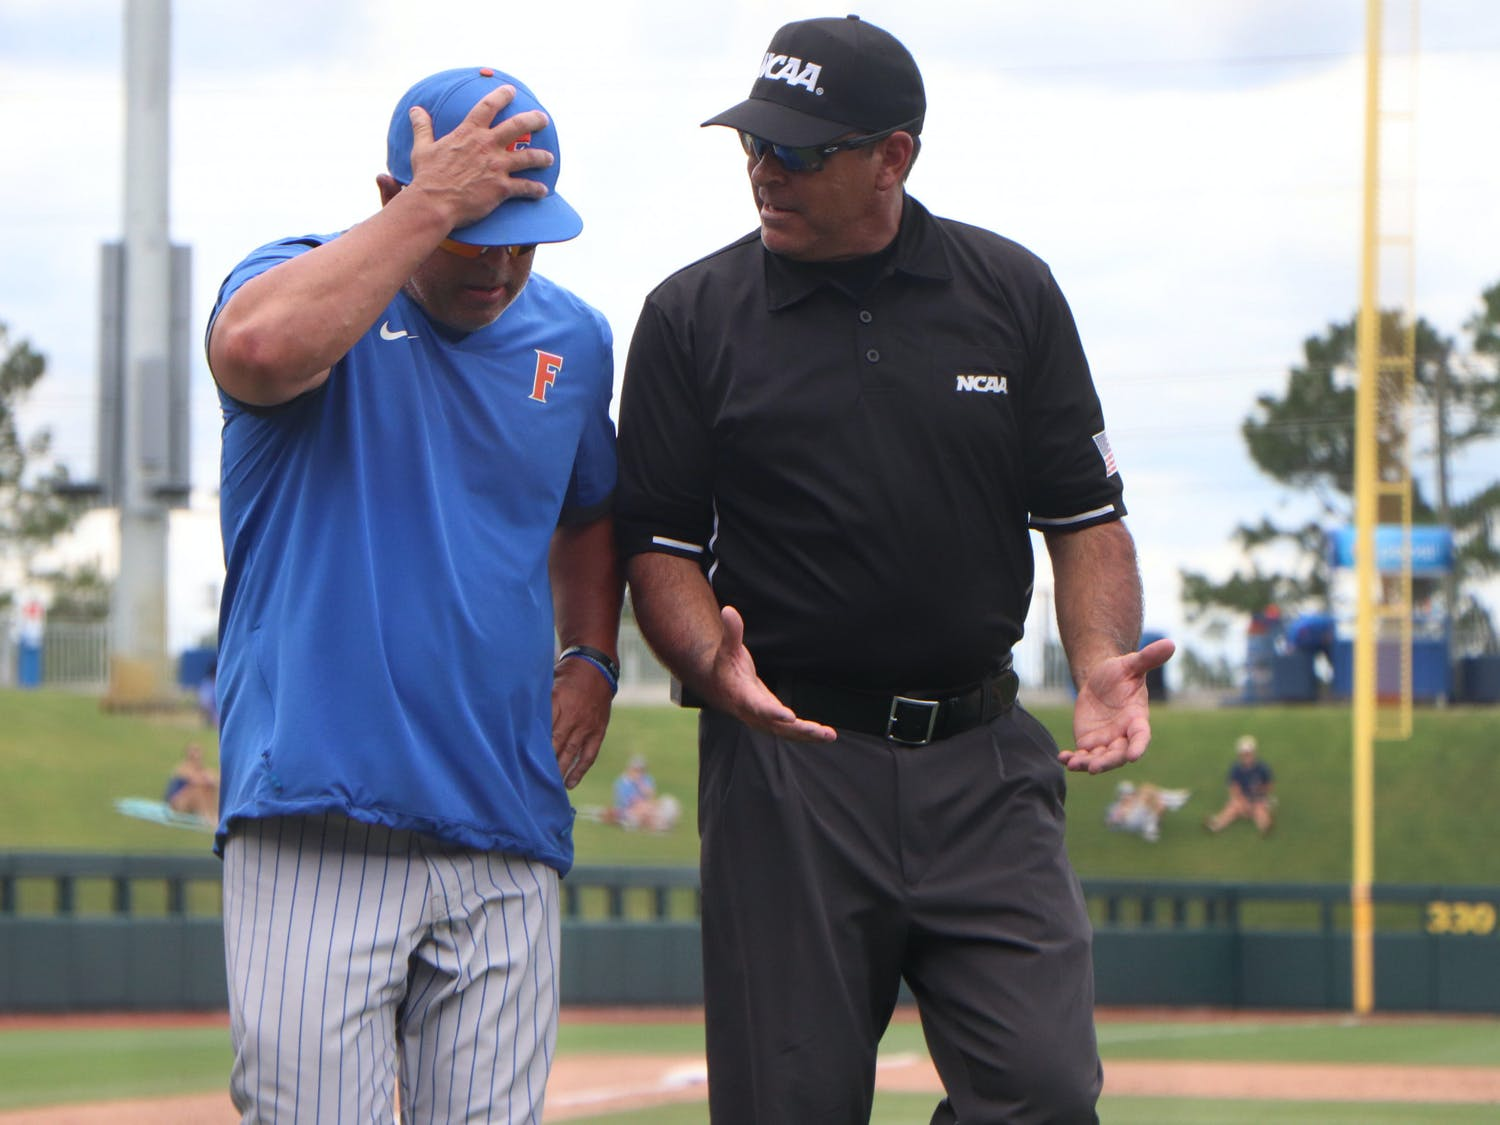 Florida baseball head coach Kevin O'Sullivan argues with an umpire after a waved-off ground ball in the sixth inning of a 19-1 loss to South Alabama on June 5. The loss ended the unanimous preseason No. 1's season at just 38-22 after being swept out of its own regional.